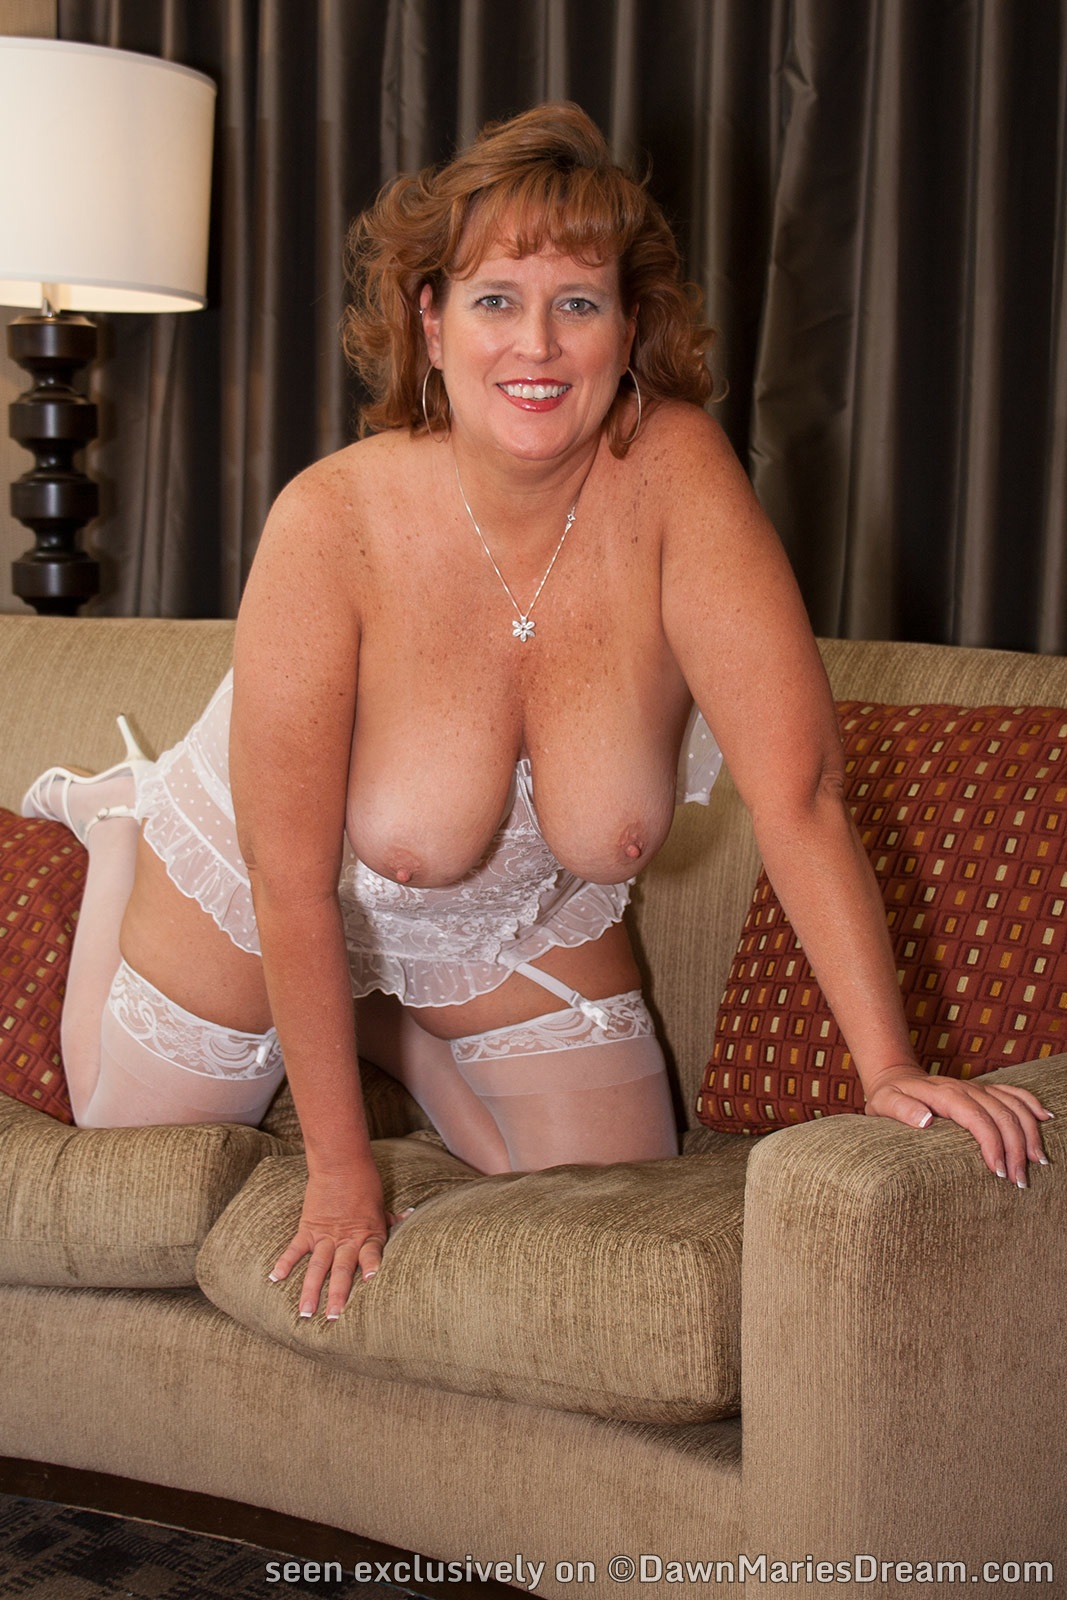 Dawn maries dream amateur redhead housewife tgp